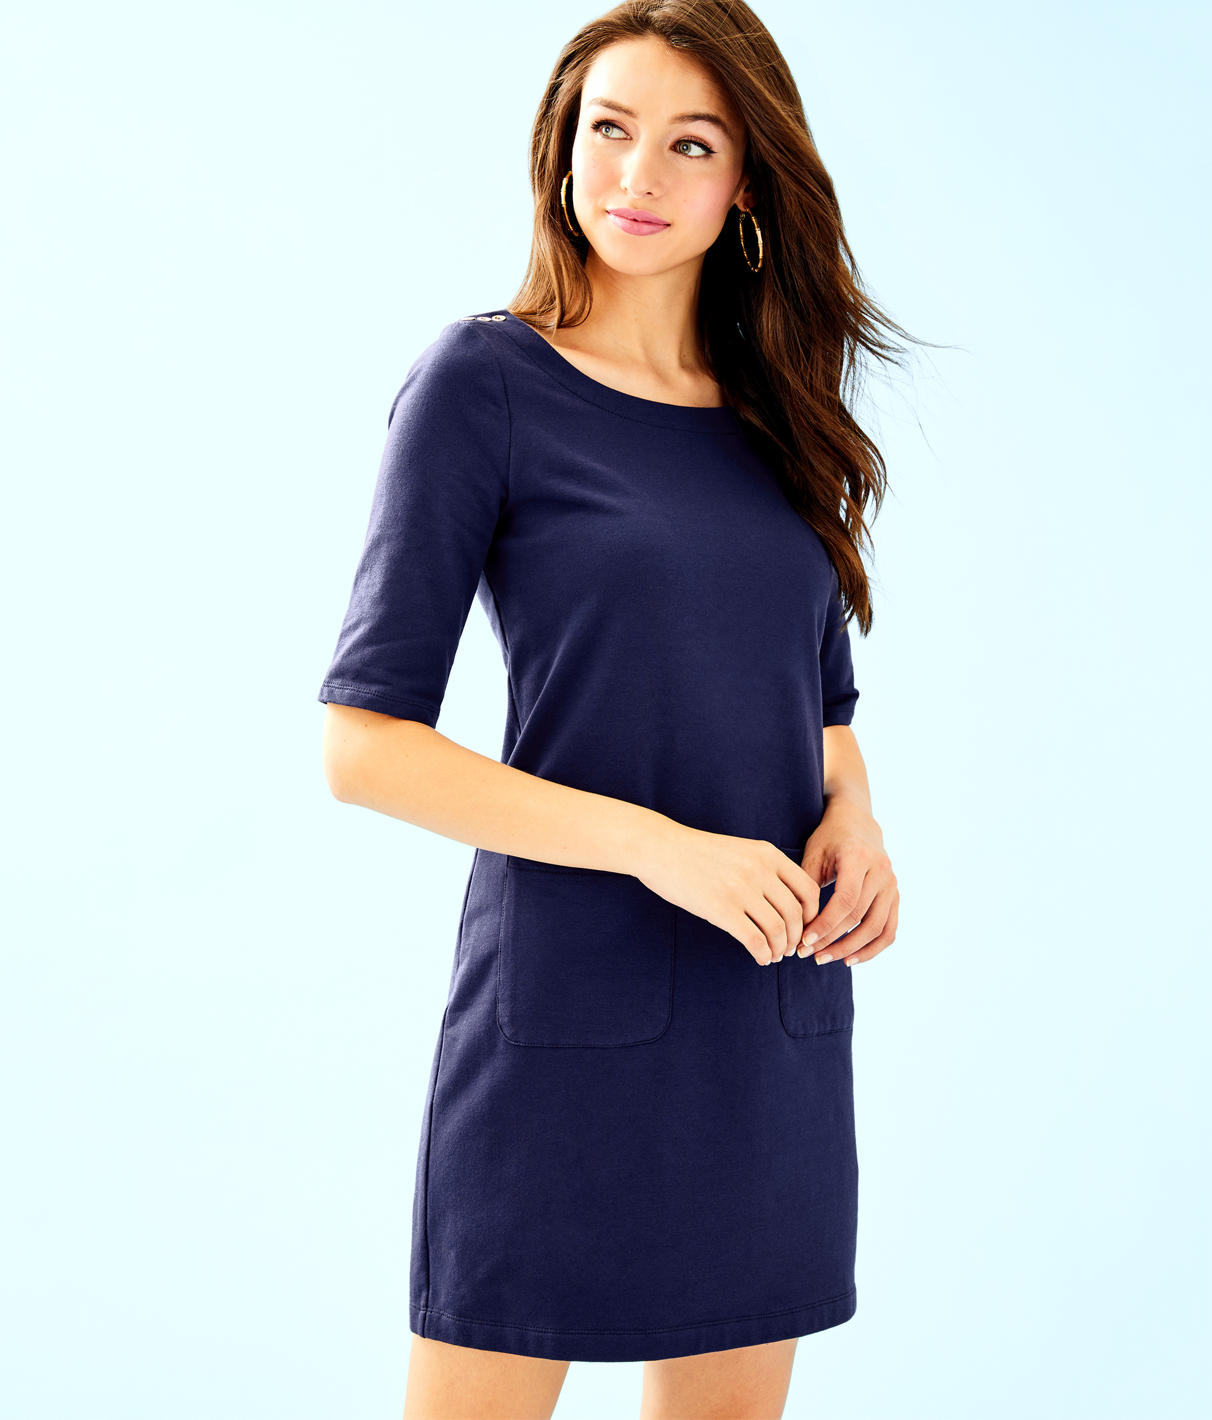 Lilly Pulitzer Lilah Dress